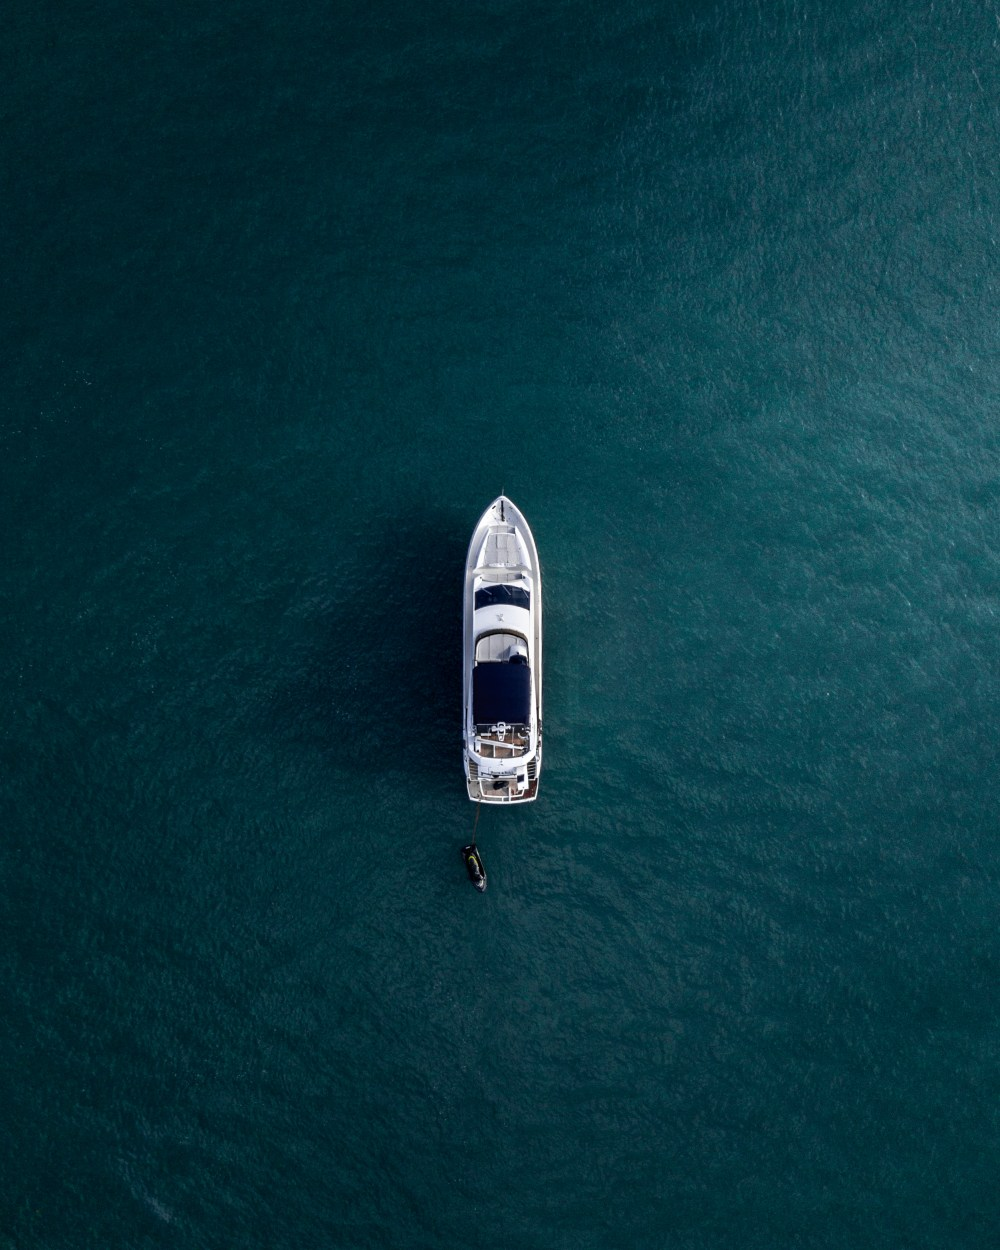 Luxury Pictures  Download Free Images on Unsplash